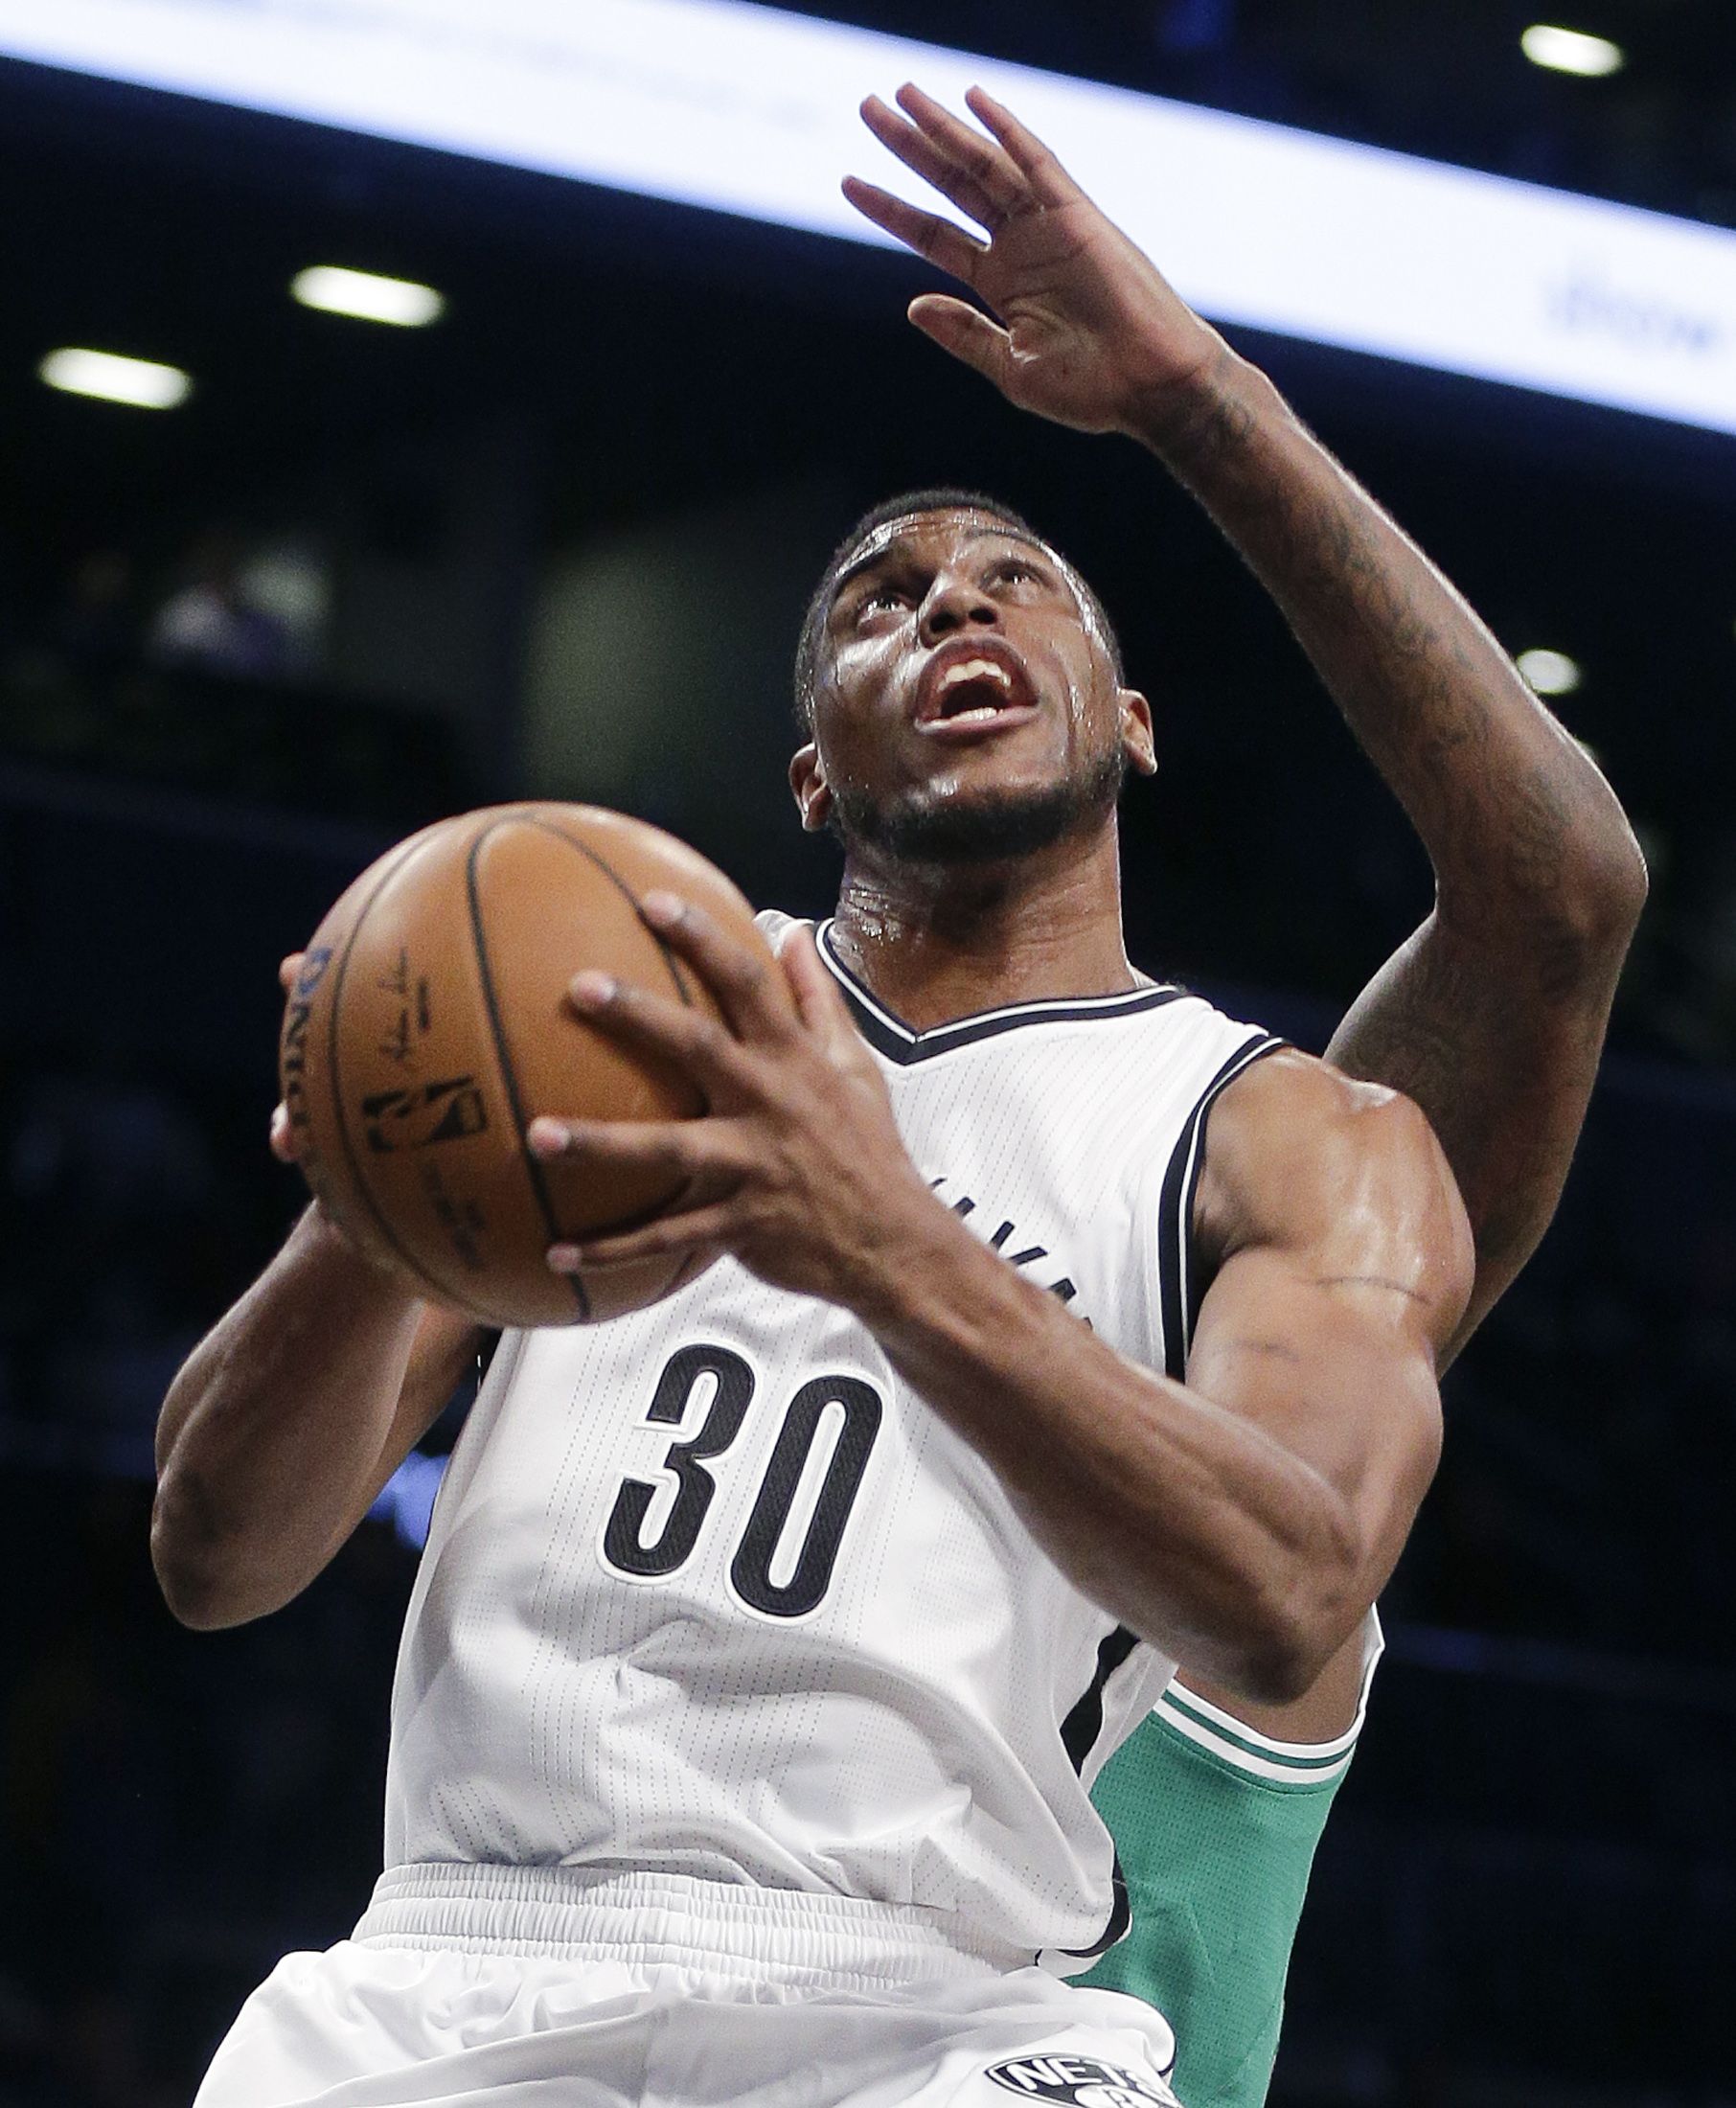 Brooklyn Nets forward Thaddeus Young (30) goes up for a shot against the Boston Celtics during the first quarter of a preseason NBA basketball game, Wednesday, Oct. 14, 2015, in New York. (AP Photo/Julie Jacobson)